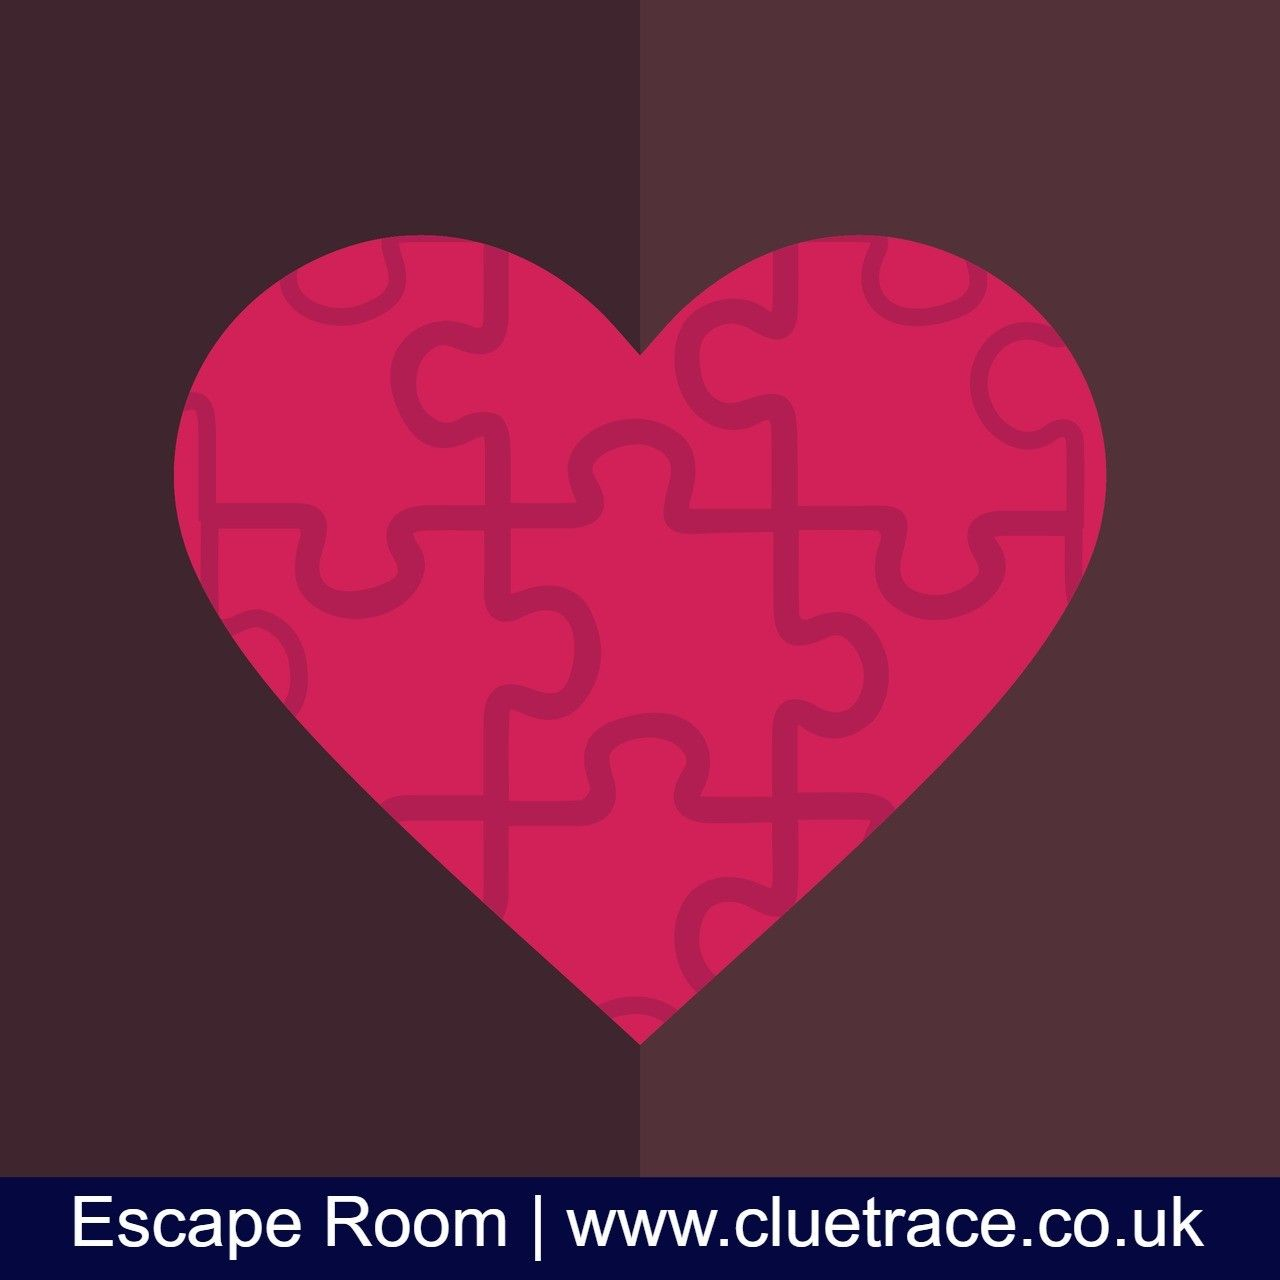 Play as a team to find clues and solve unique, challenging puzzles in 60 minutes. #London #escaperoom |  http://wu.to/lCnLlu